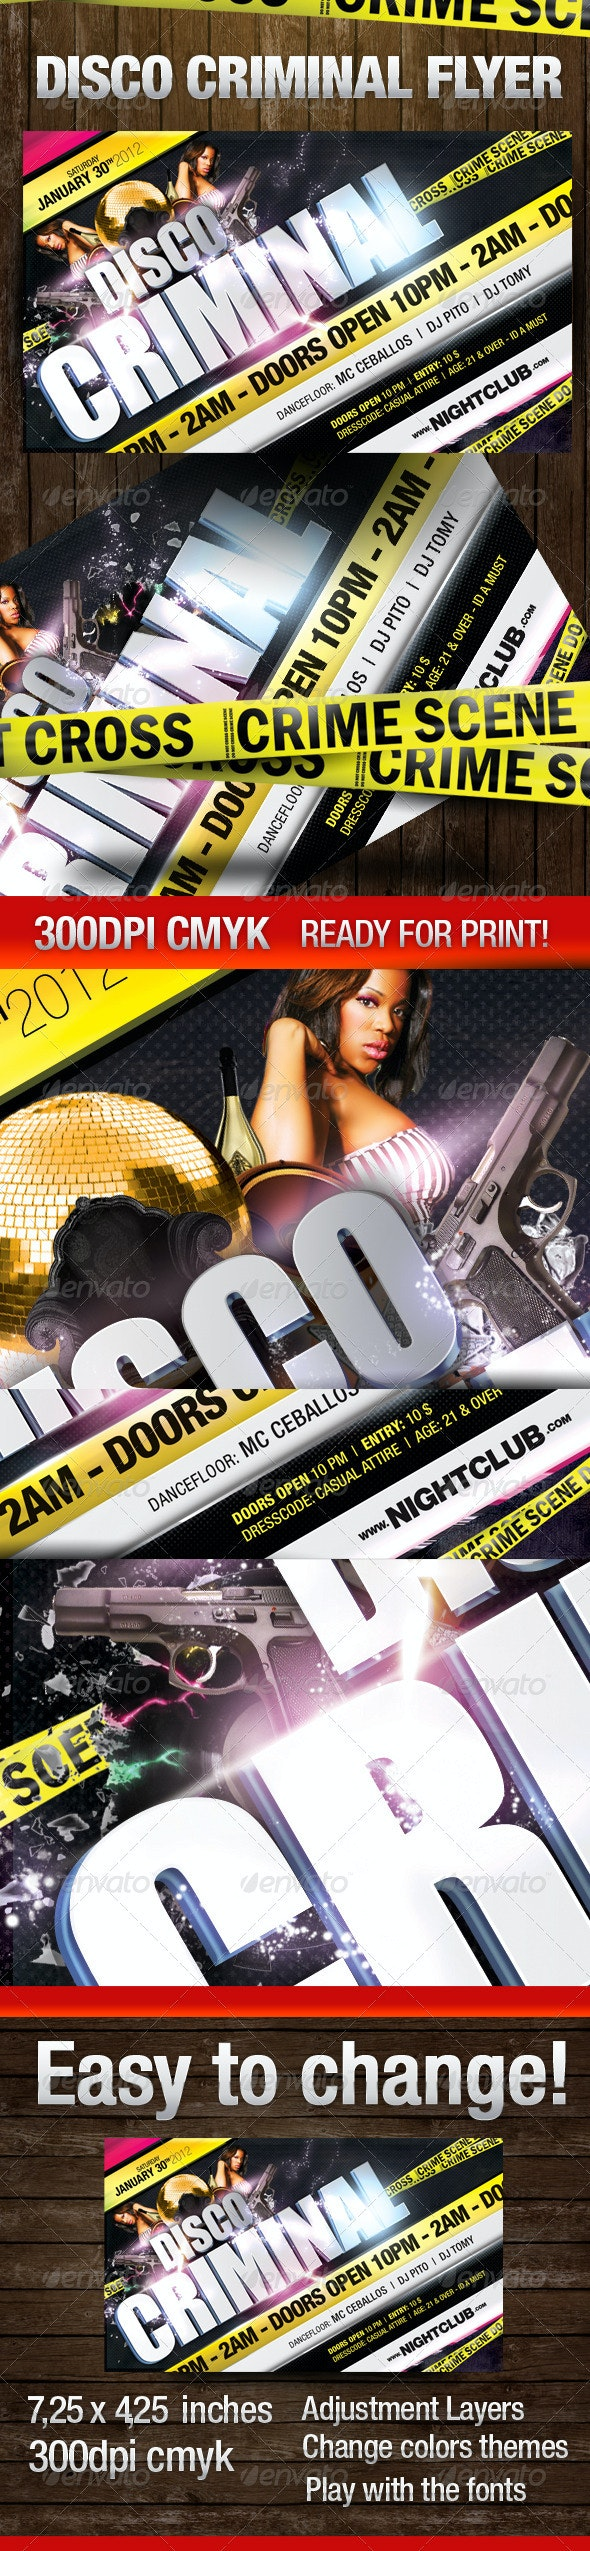 Disco Criminal Party Flyer - Clubs & Parties Events